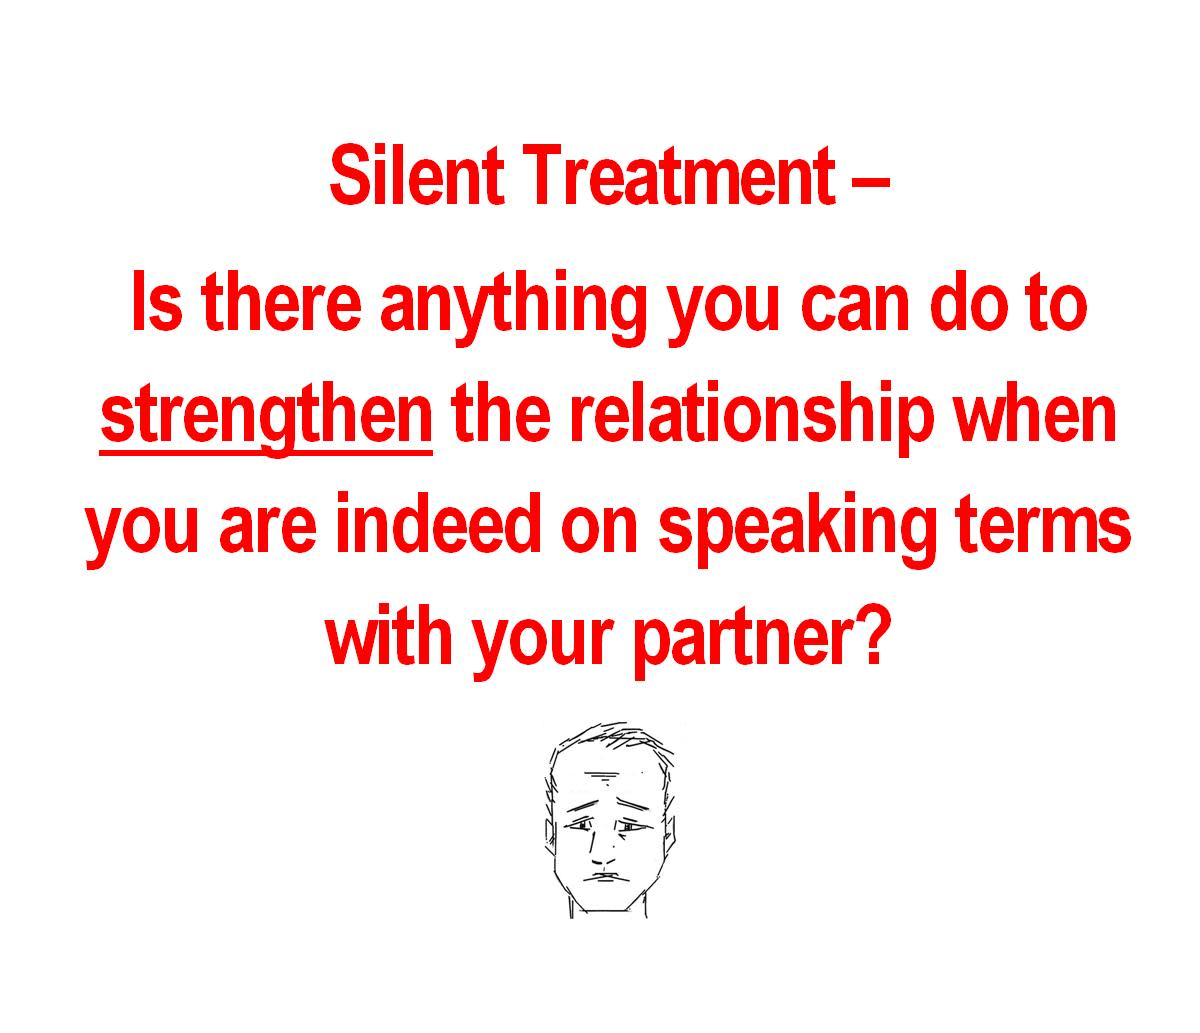 Silent Treatment - and when you're back on good speaking terms